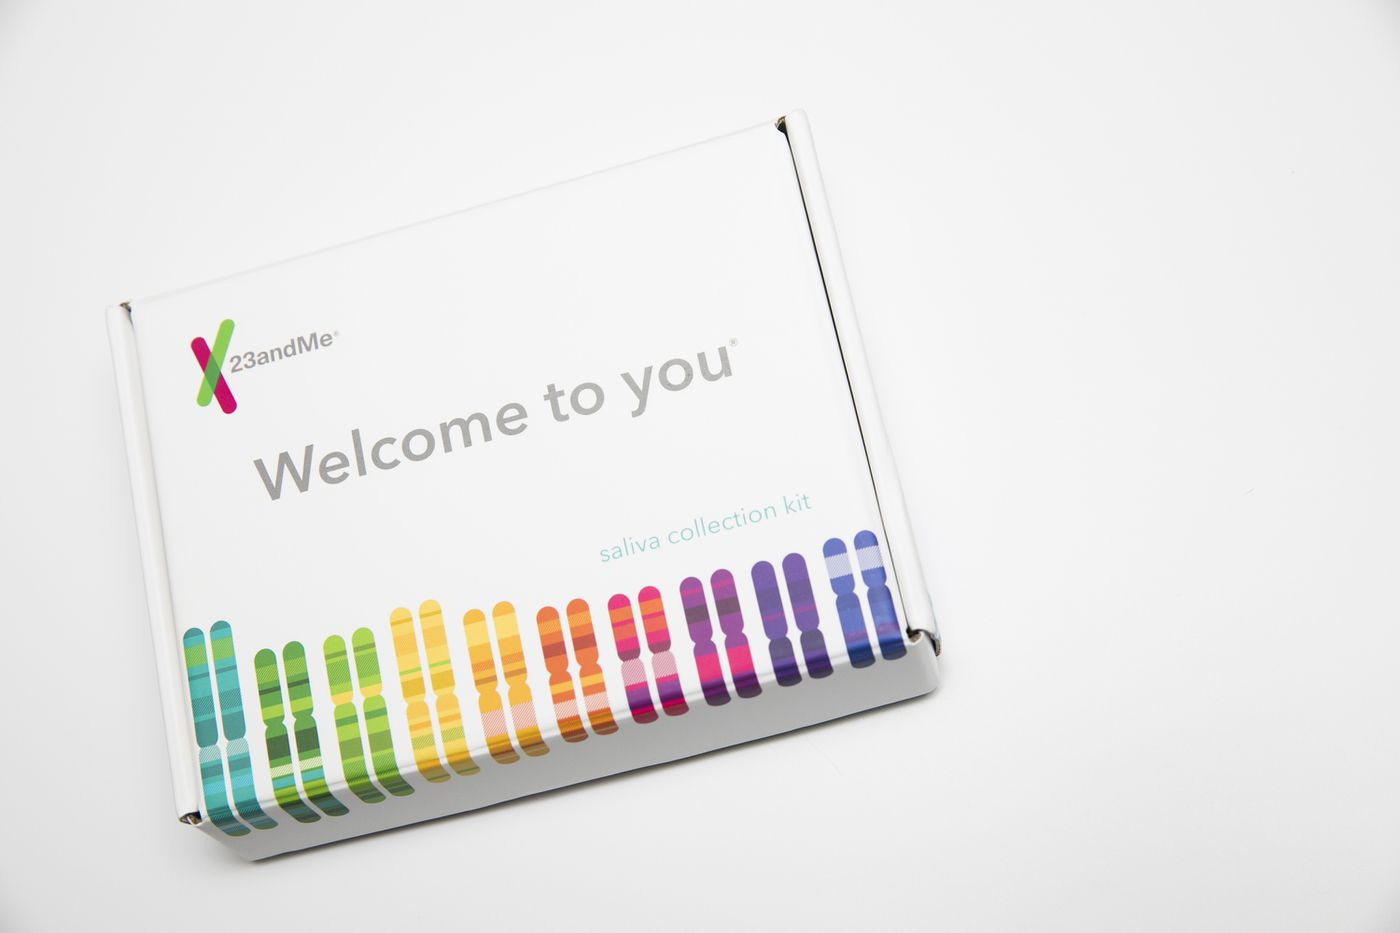 Test results: Glaxo pays 23andMe $300M, will use 4 million customers' genetic data